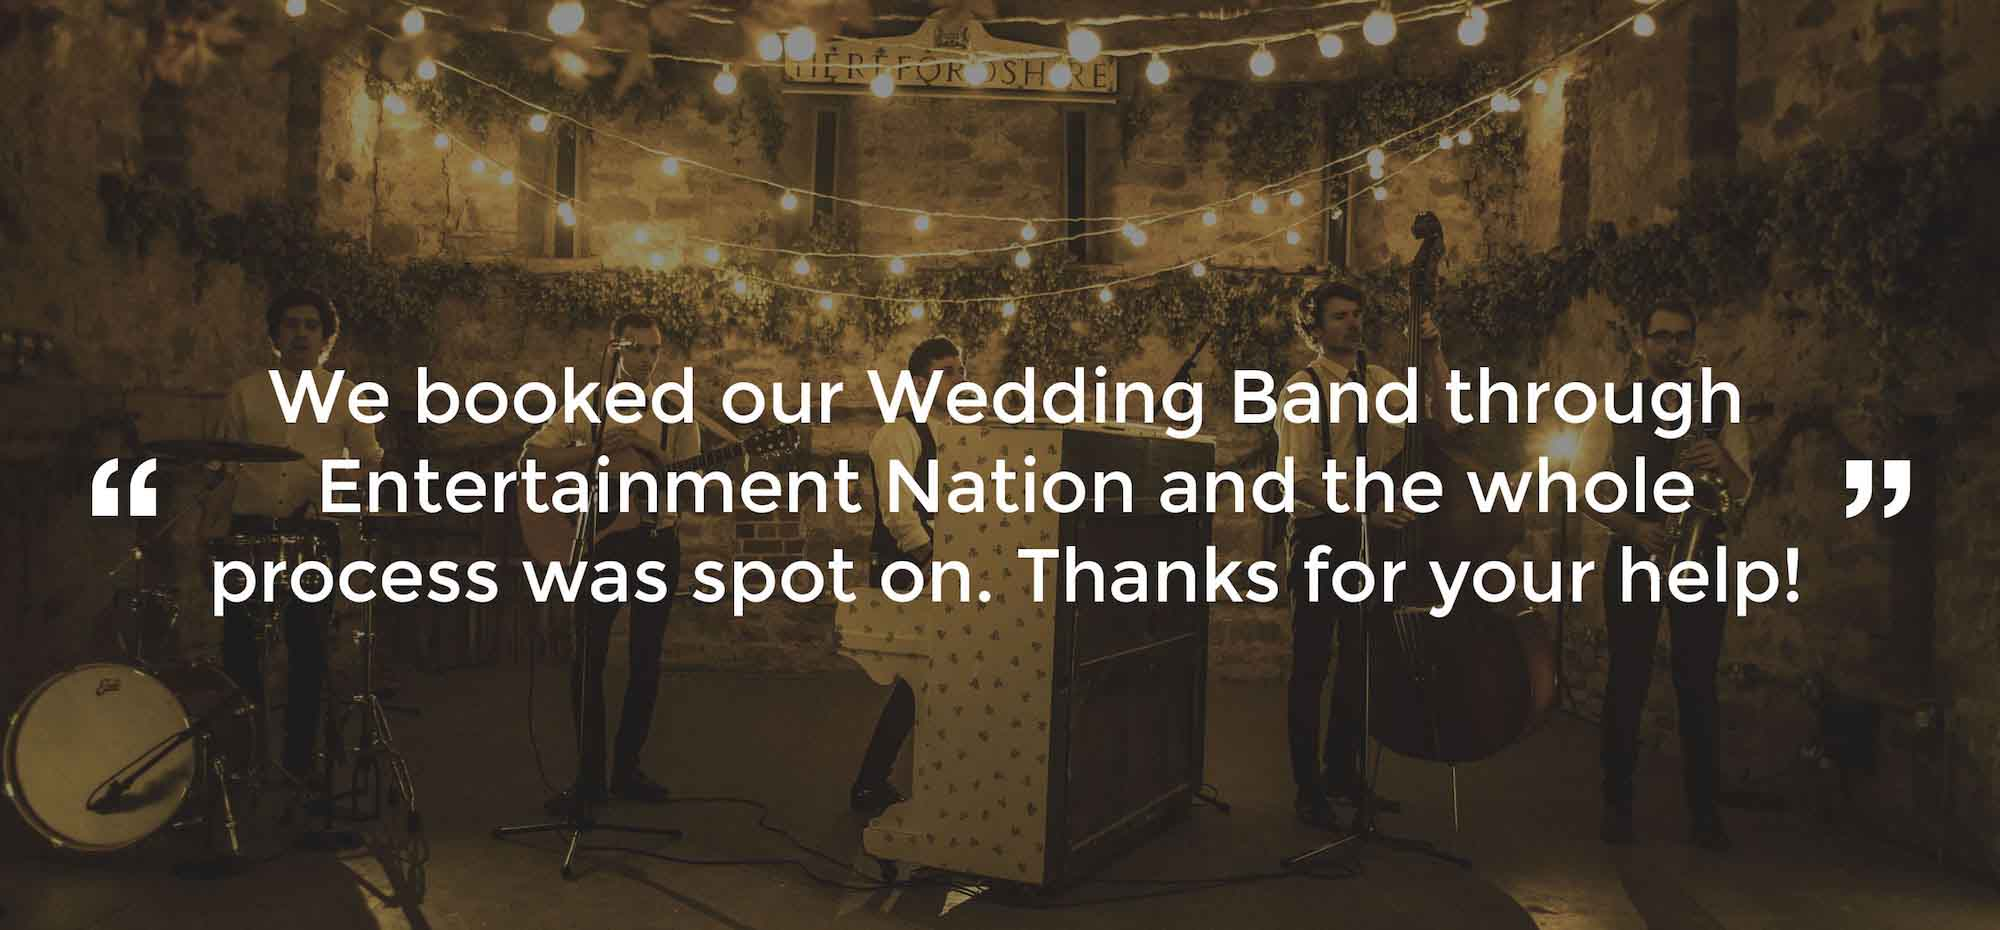 Client Review of a Wedding Band Buckinghamshire